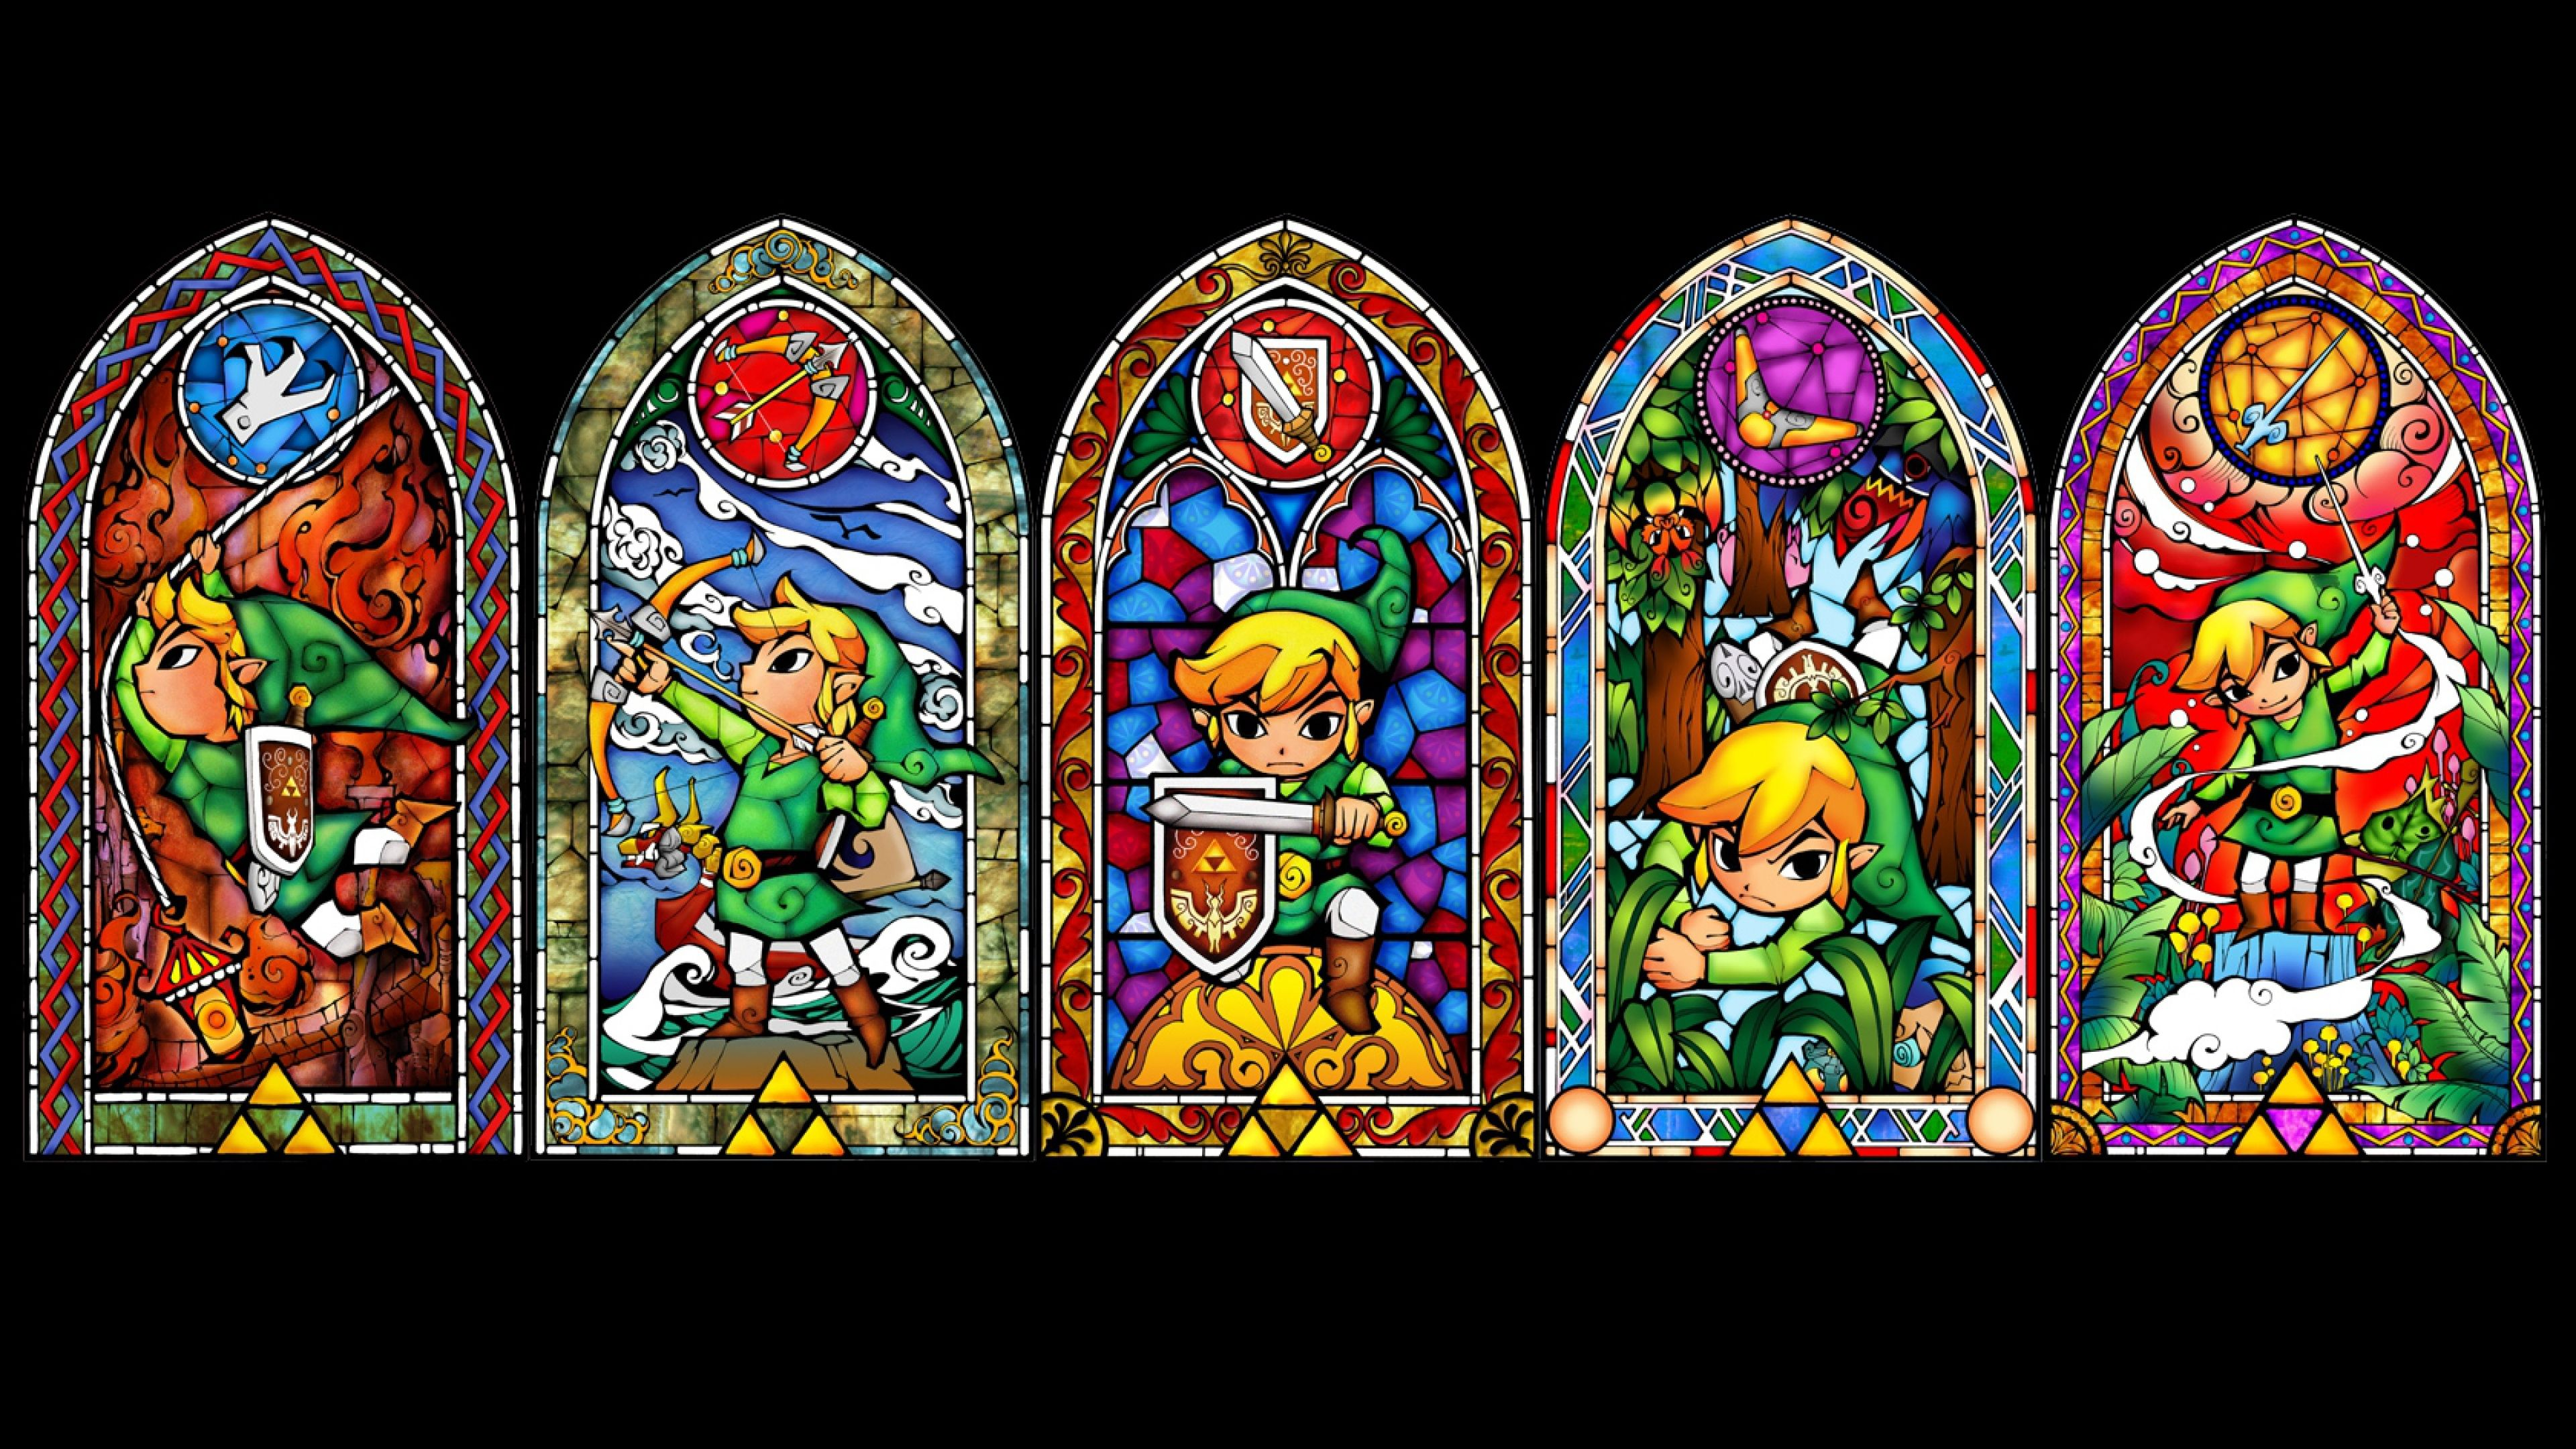 The Legend Of Zelda Windows Elf Character Link 22308 3840x2160 Jpg 3 840 2 160 Pixels Wind Waker Legend Of Zelda Map Art